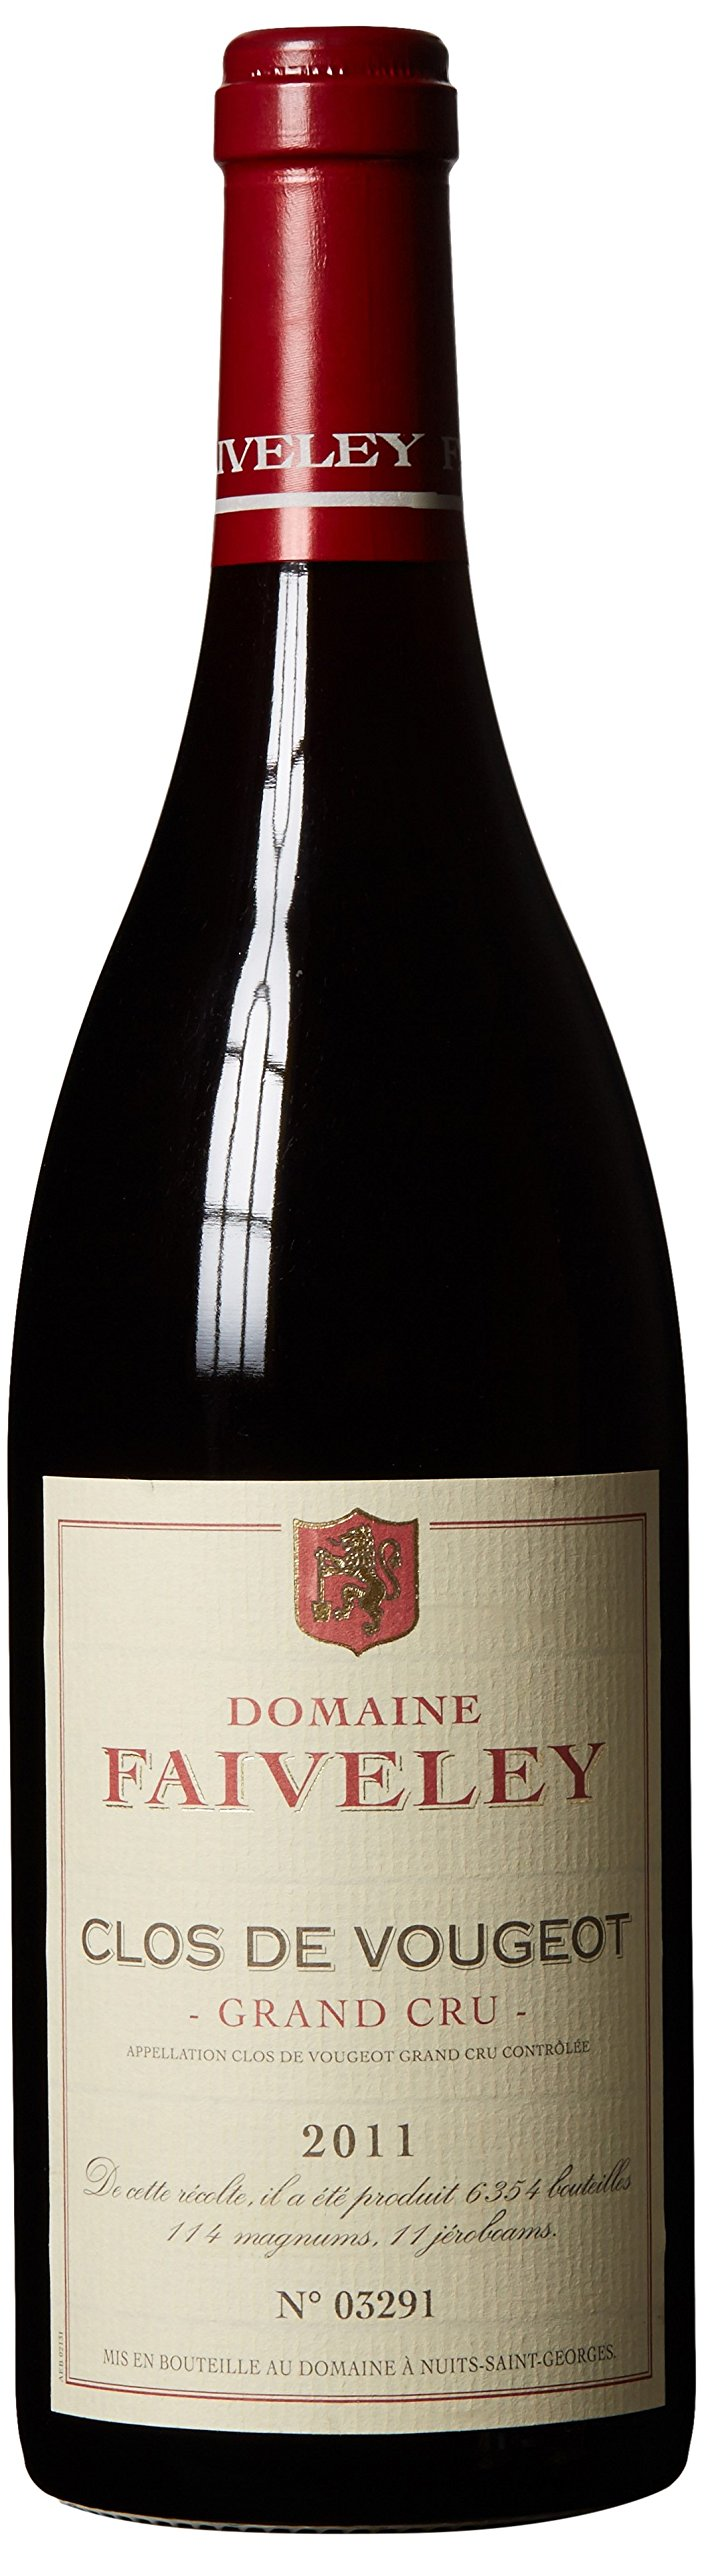 2011 Joseph Faiveley - Clos de Vougeot Grand Cru Burgundy 750 mL by Joseph Faiveley